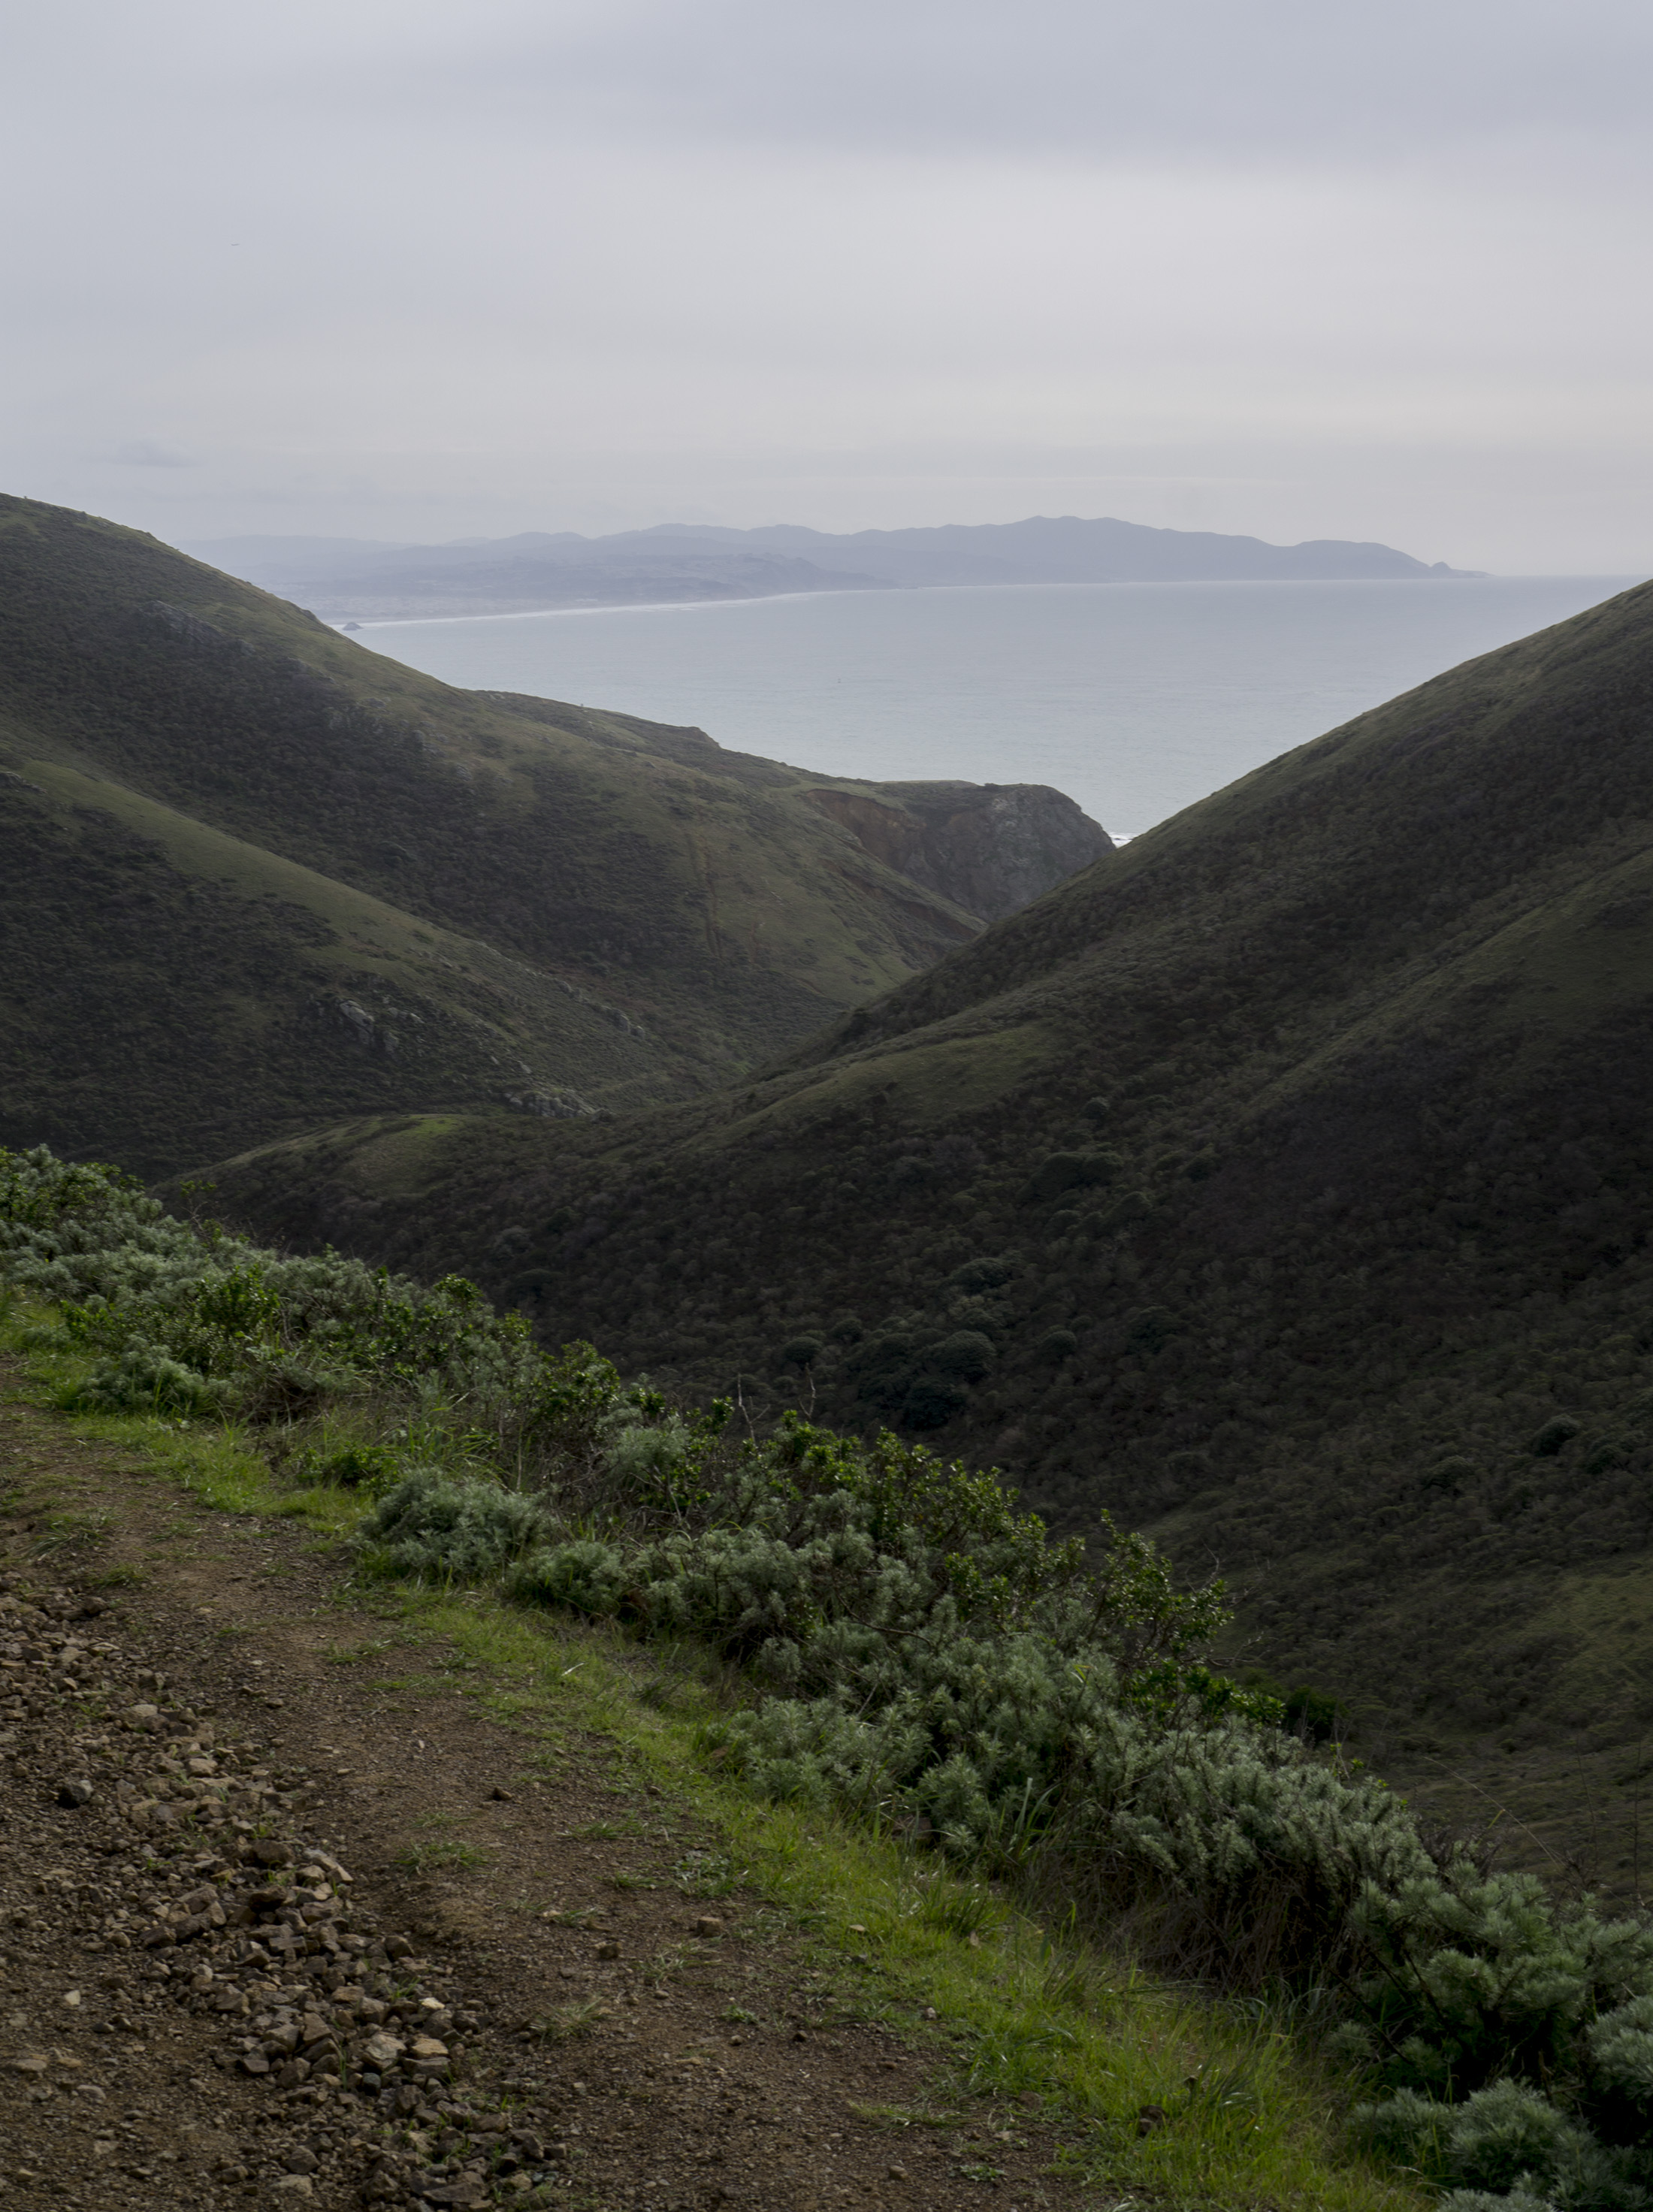 Pacific Ocean peeking through mountains along Tennessee Valley Trail, Marin Headlands, Golden Gate National Recreation Area / Darker than Green